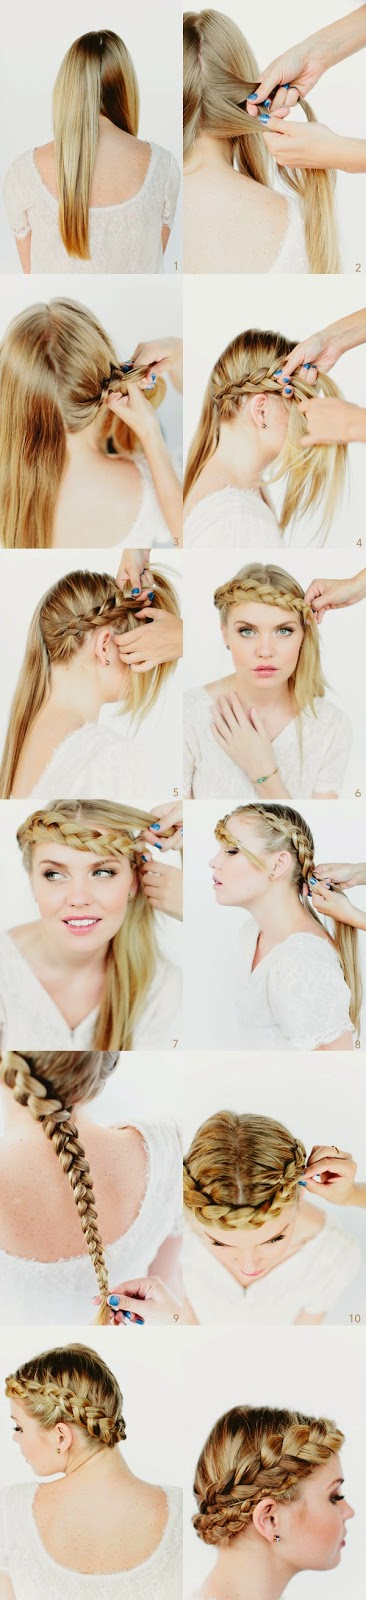 Top 5 Best Summer Braid Hairstyles